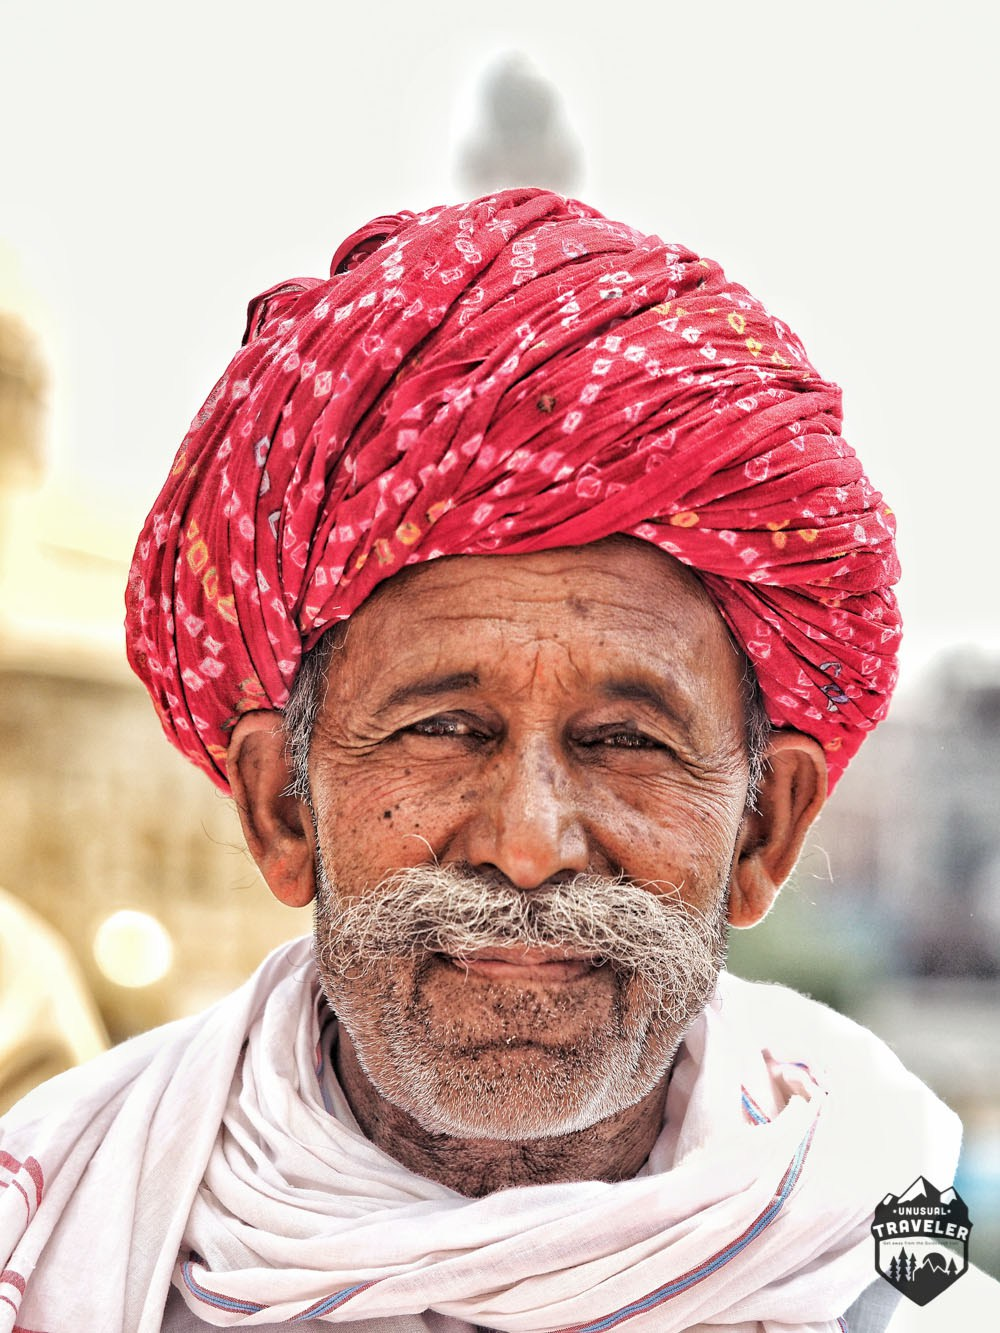 Smiles from Rajasthan - unusualtraveler.com